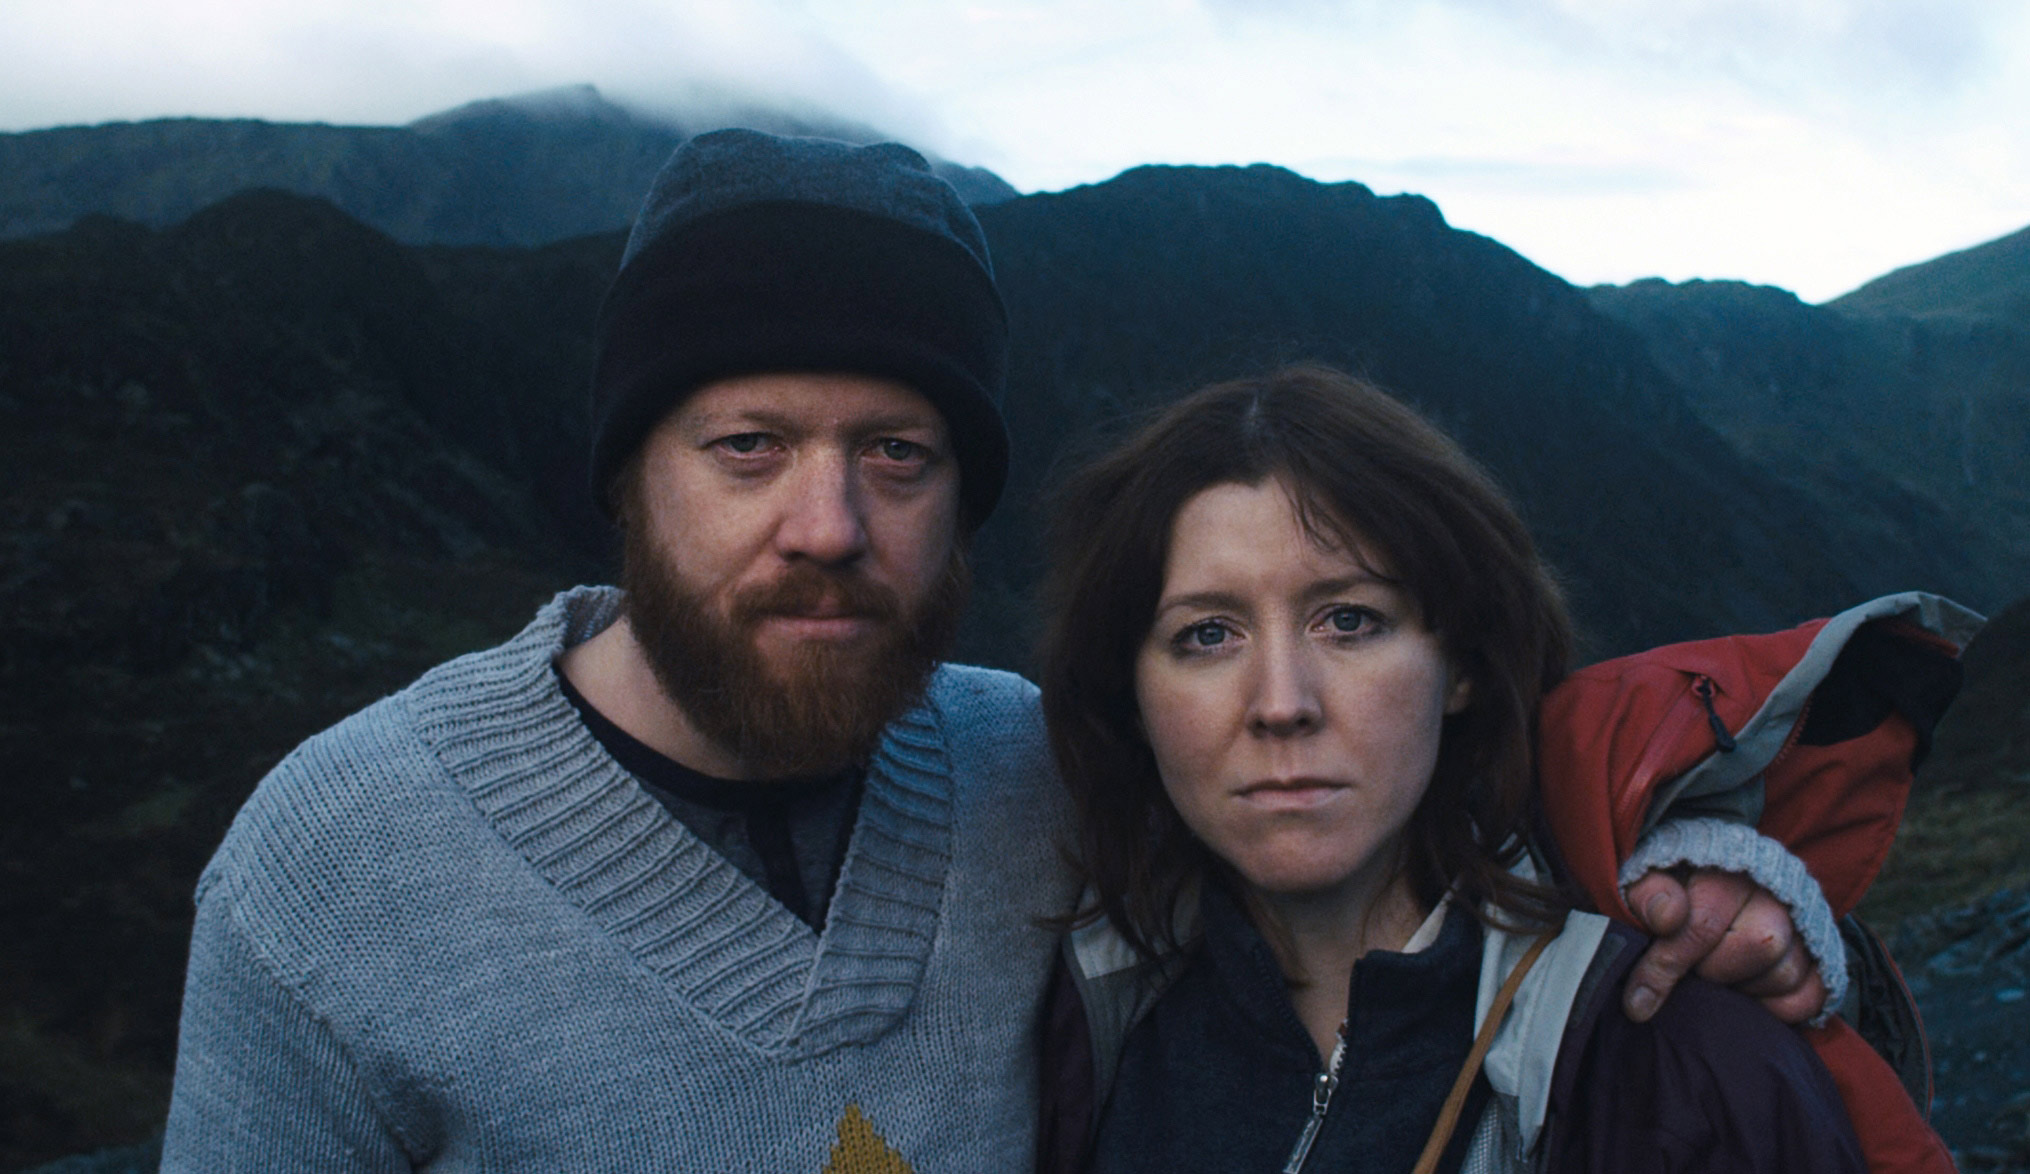 Co-writers and stars Steve Oram and Alice Lowe in Sightseers (2012)